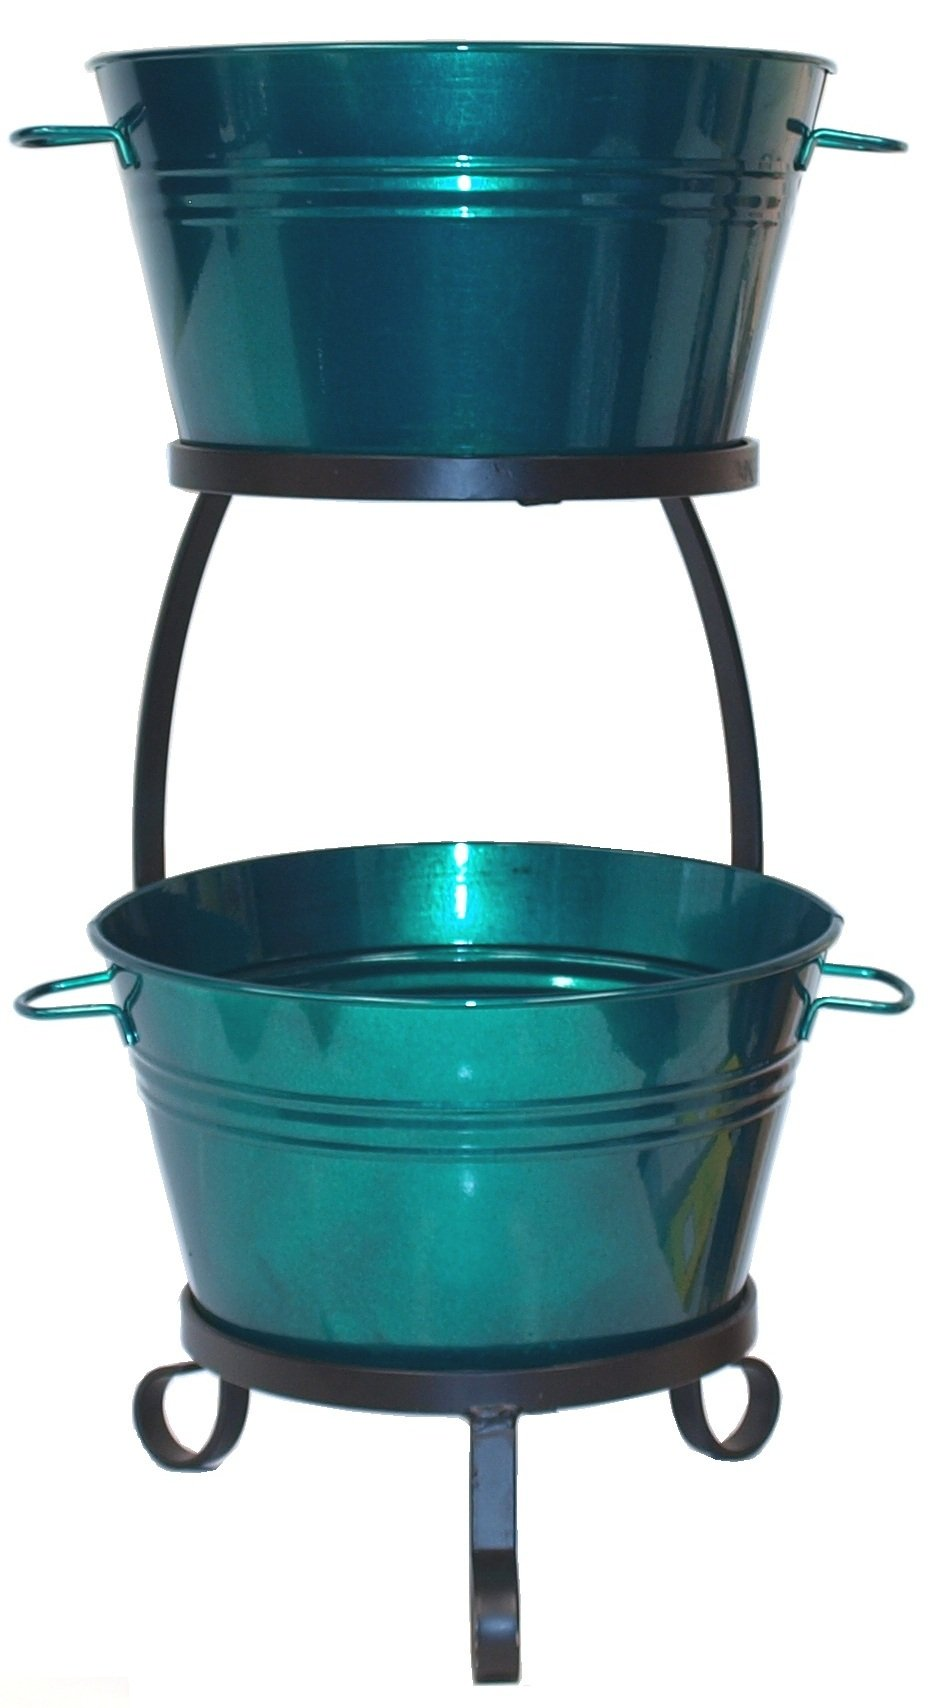 HIT Corp. 8020E GG Beverage tub with Iron Stand, Glazed Green by HIT Corp.